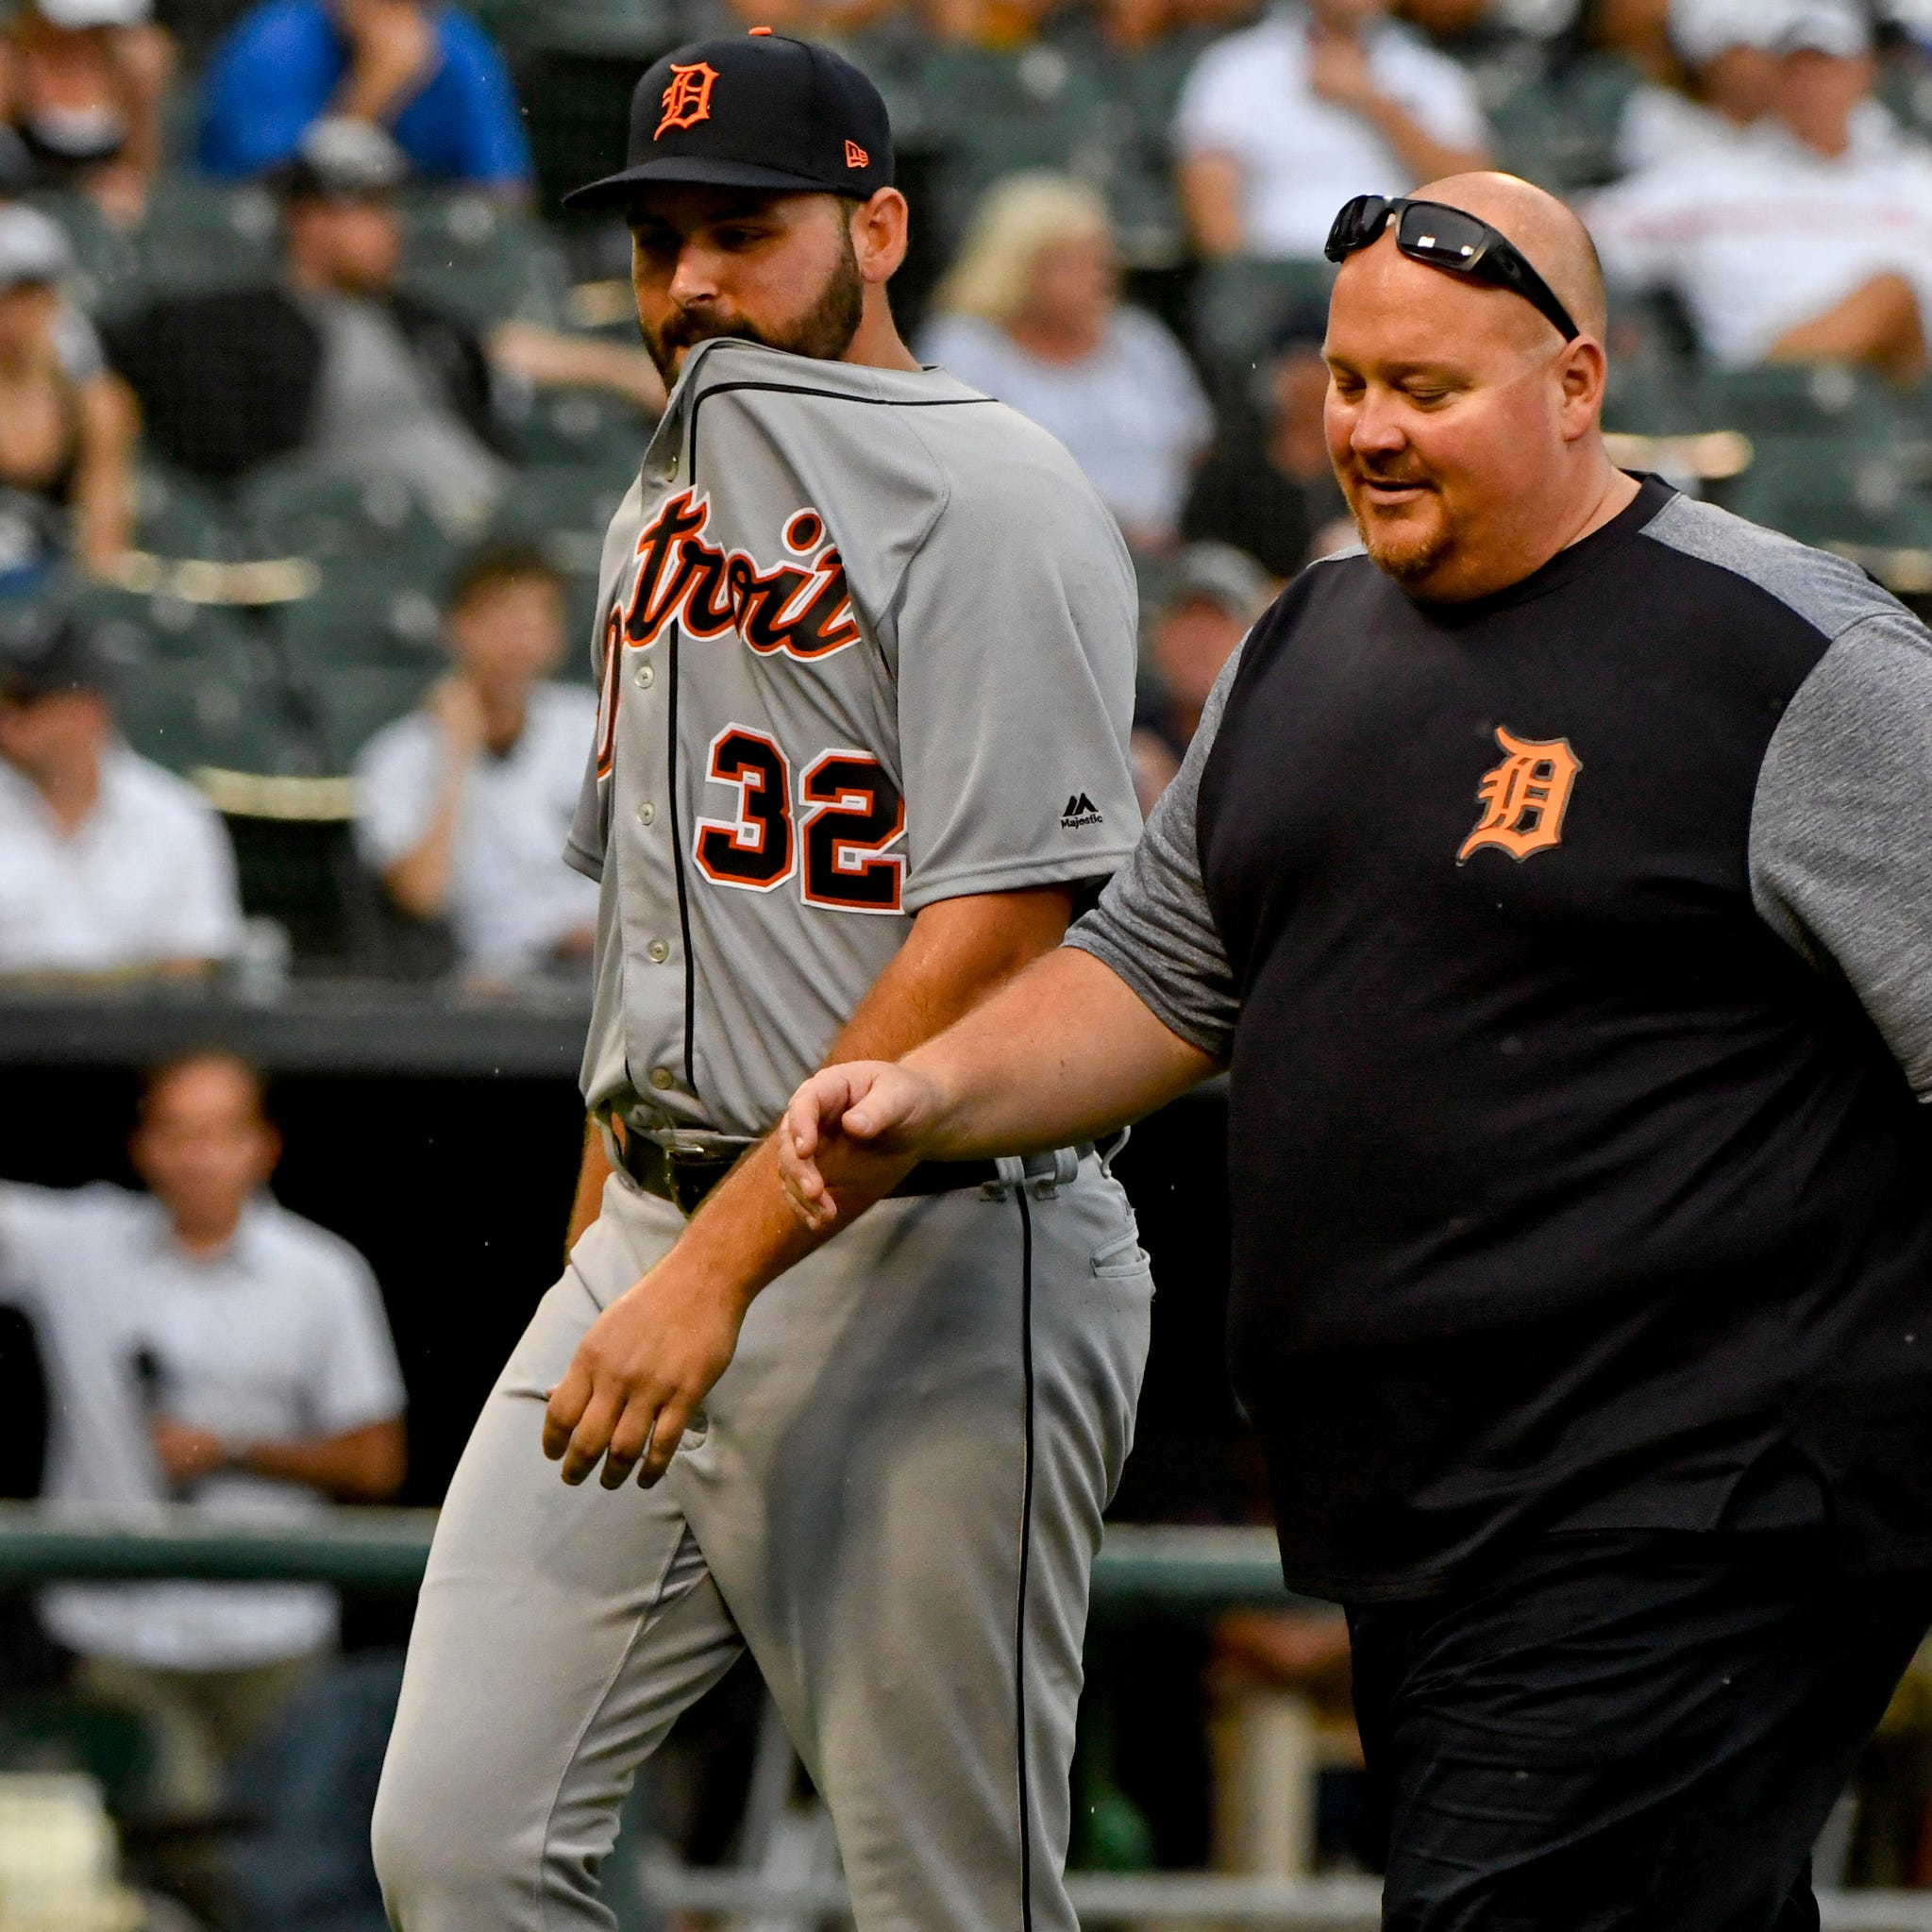 Michael Fulmer's trade value continues to plummet for Detroit Tigers